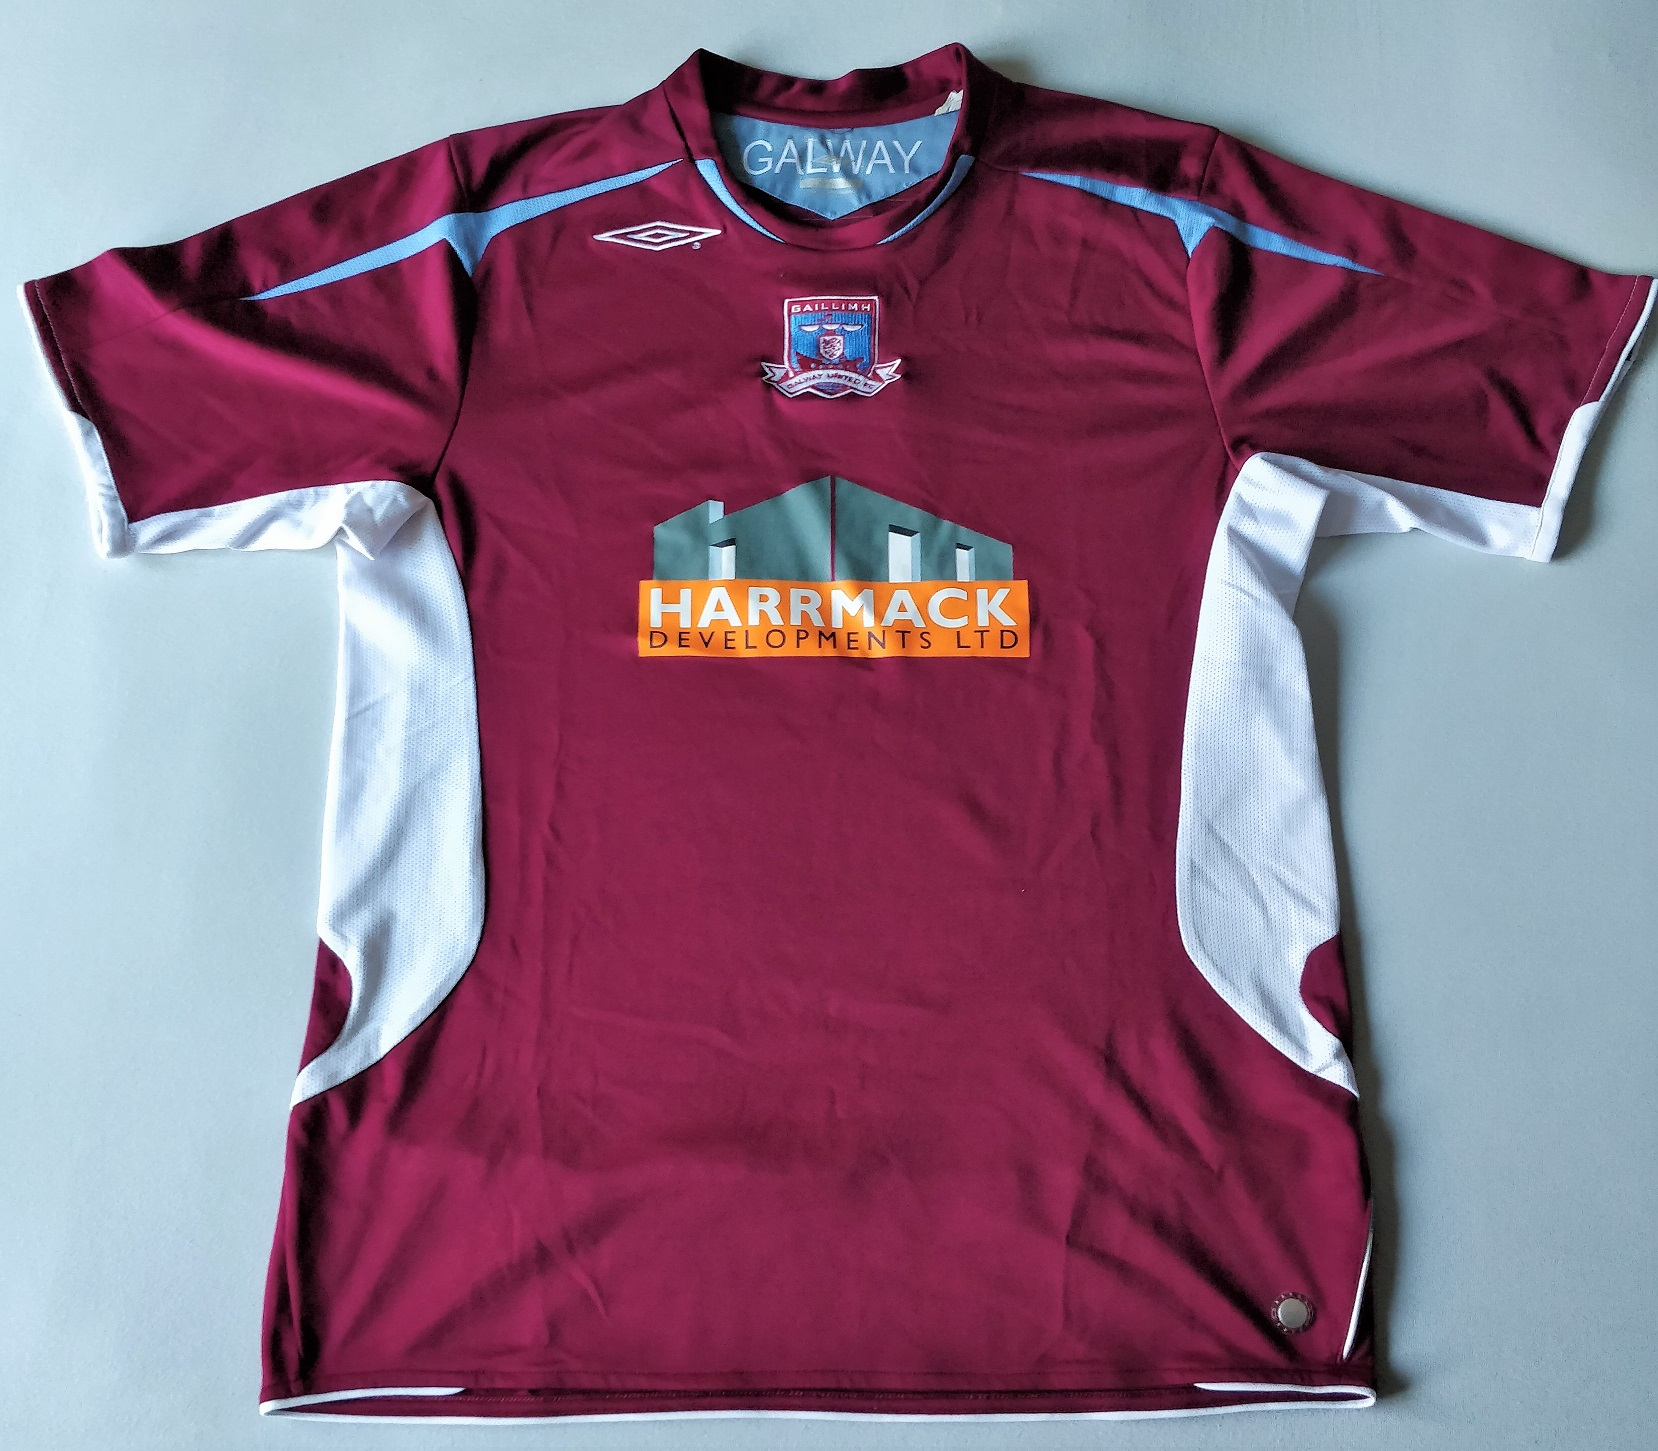 Galway United FC, Galway Rovers, Leibchen, Shirt, Robbie Williams, Eamonn Deacy, #ShirtVitrineElfsport